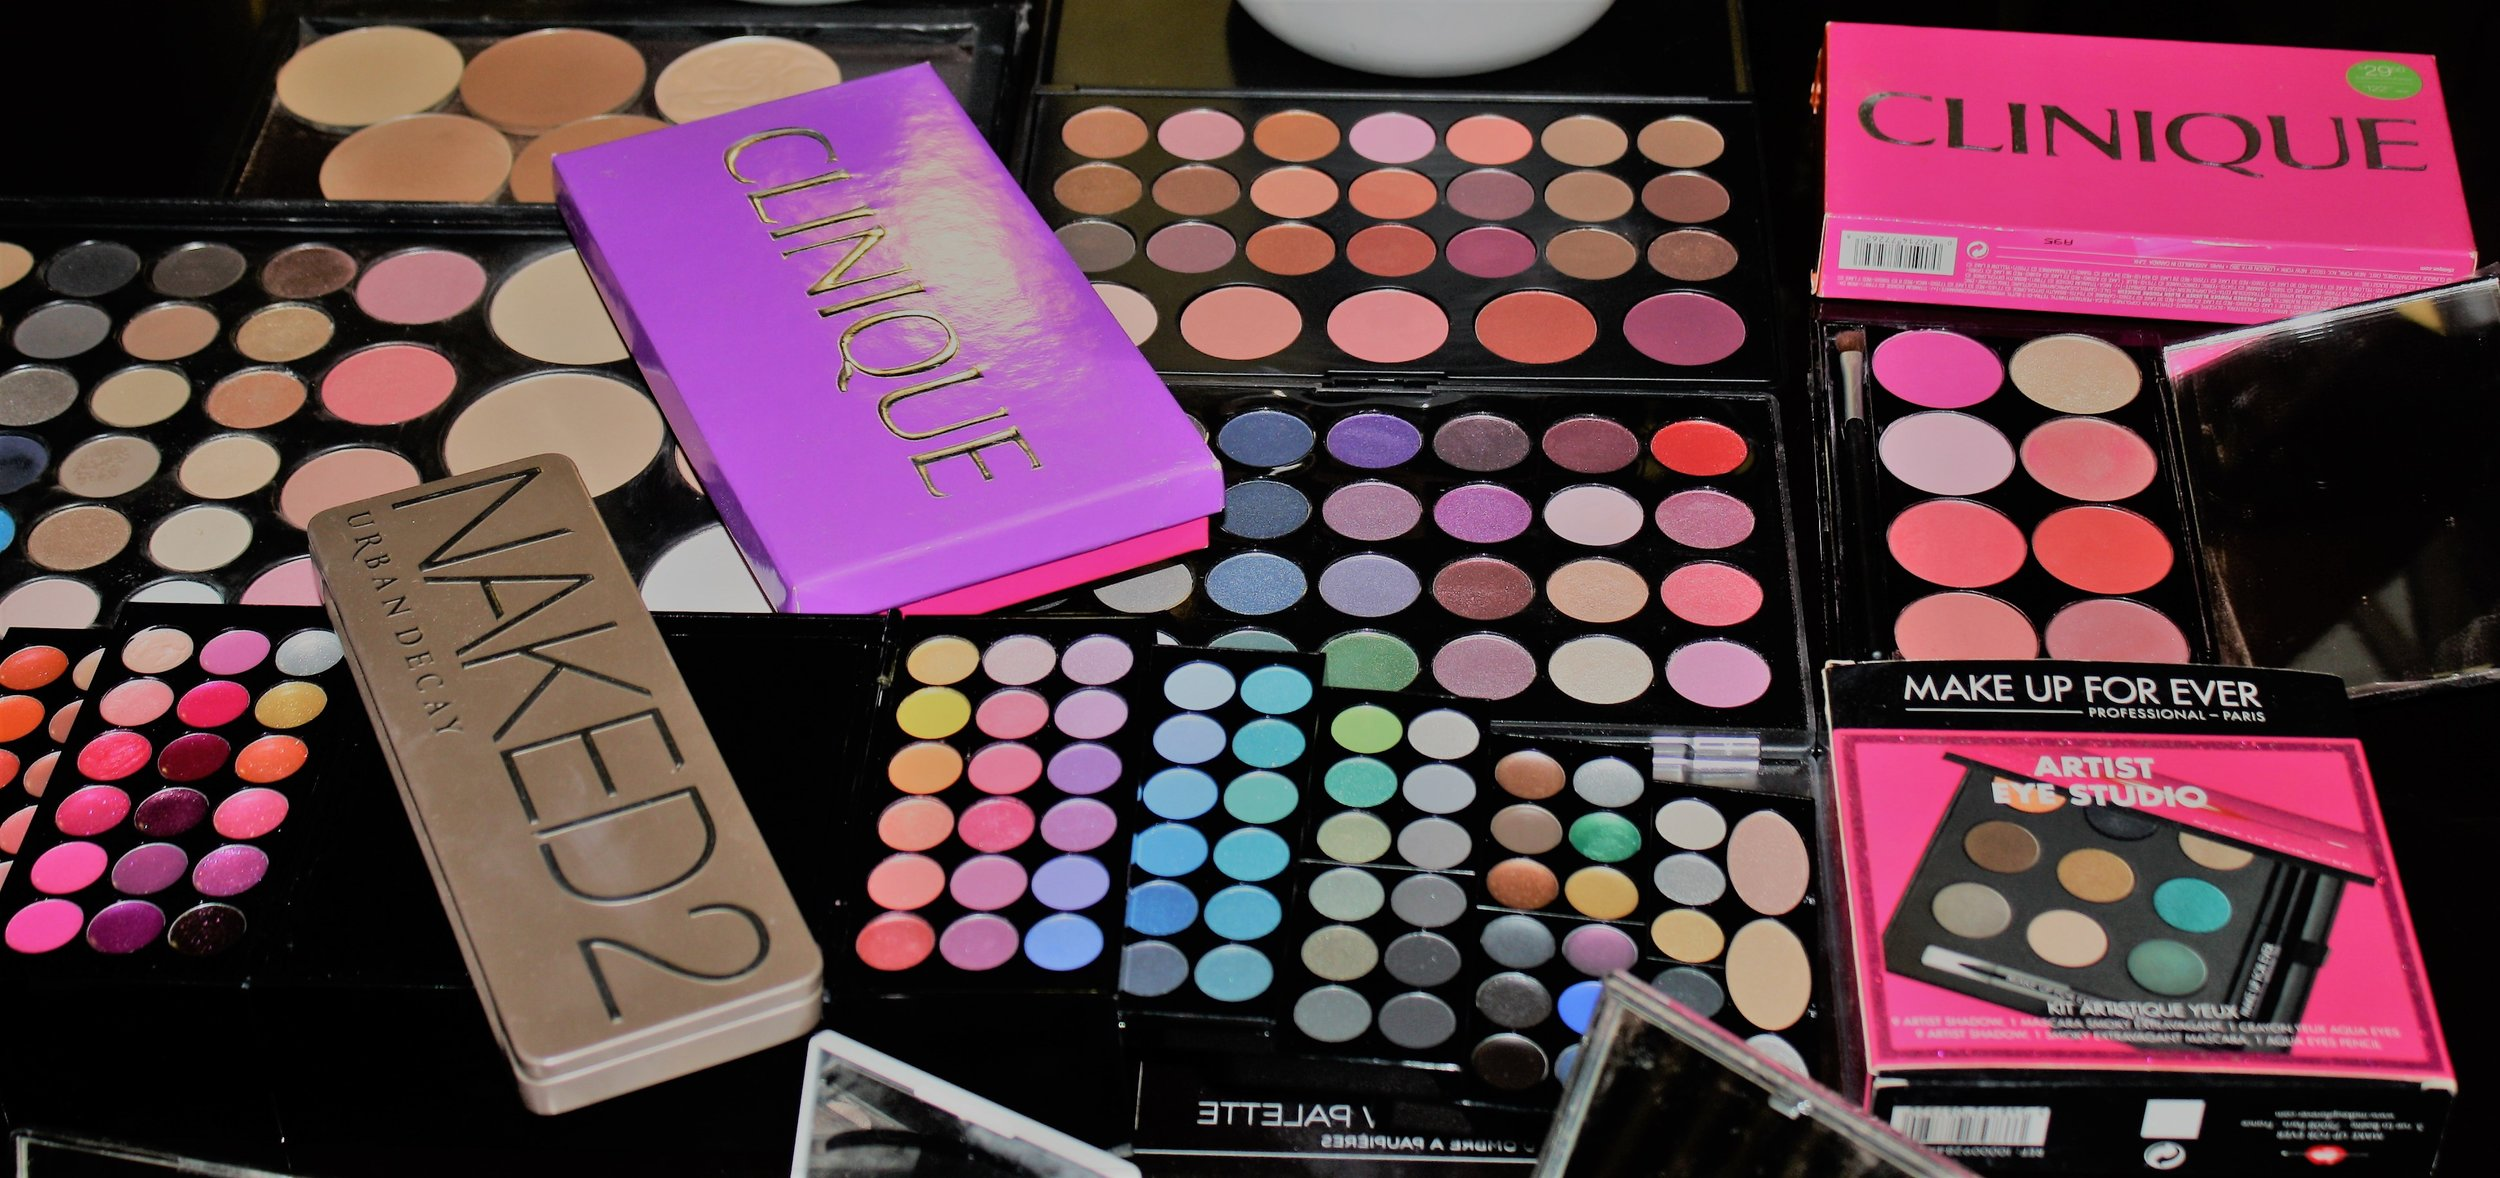 My palettes